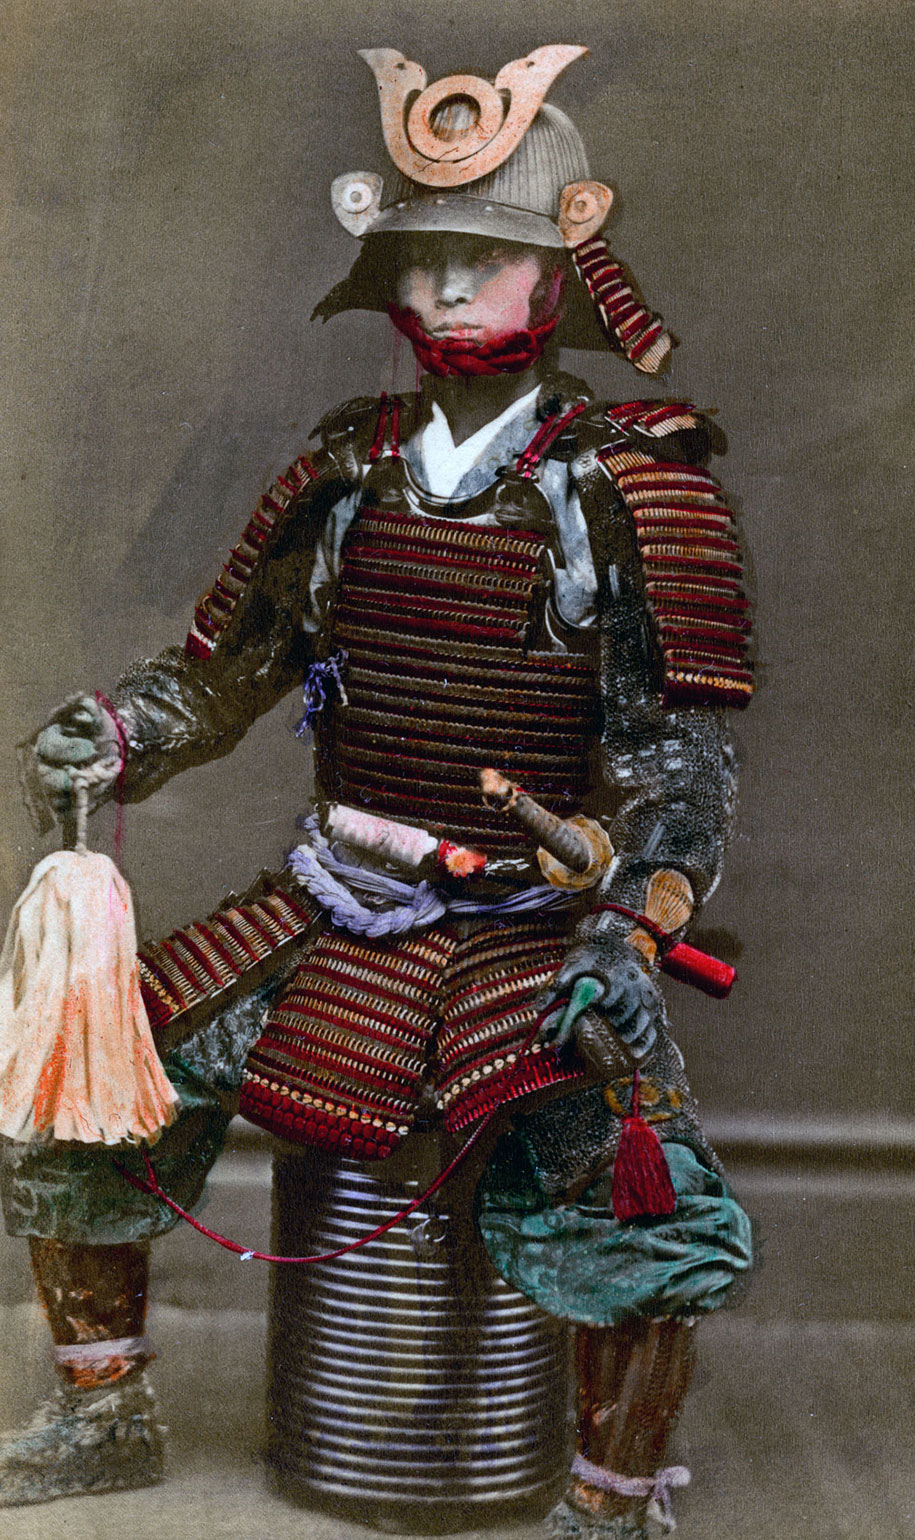 photos-of-the-last-samurai-japan-1800s-2